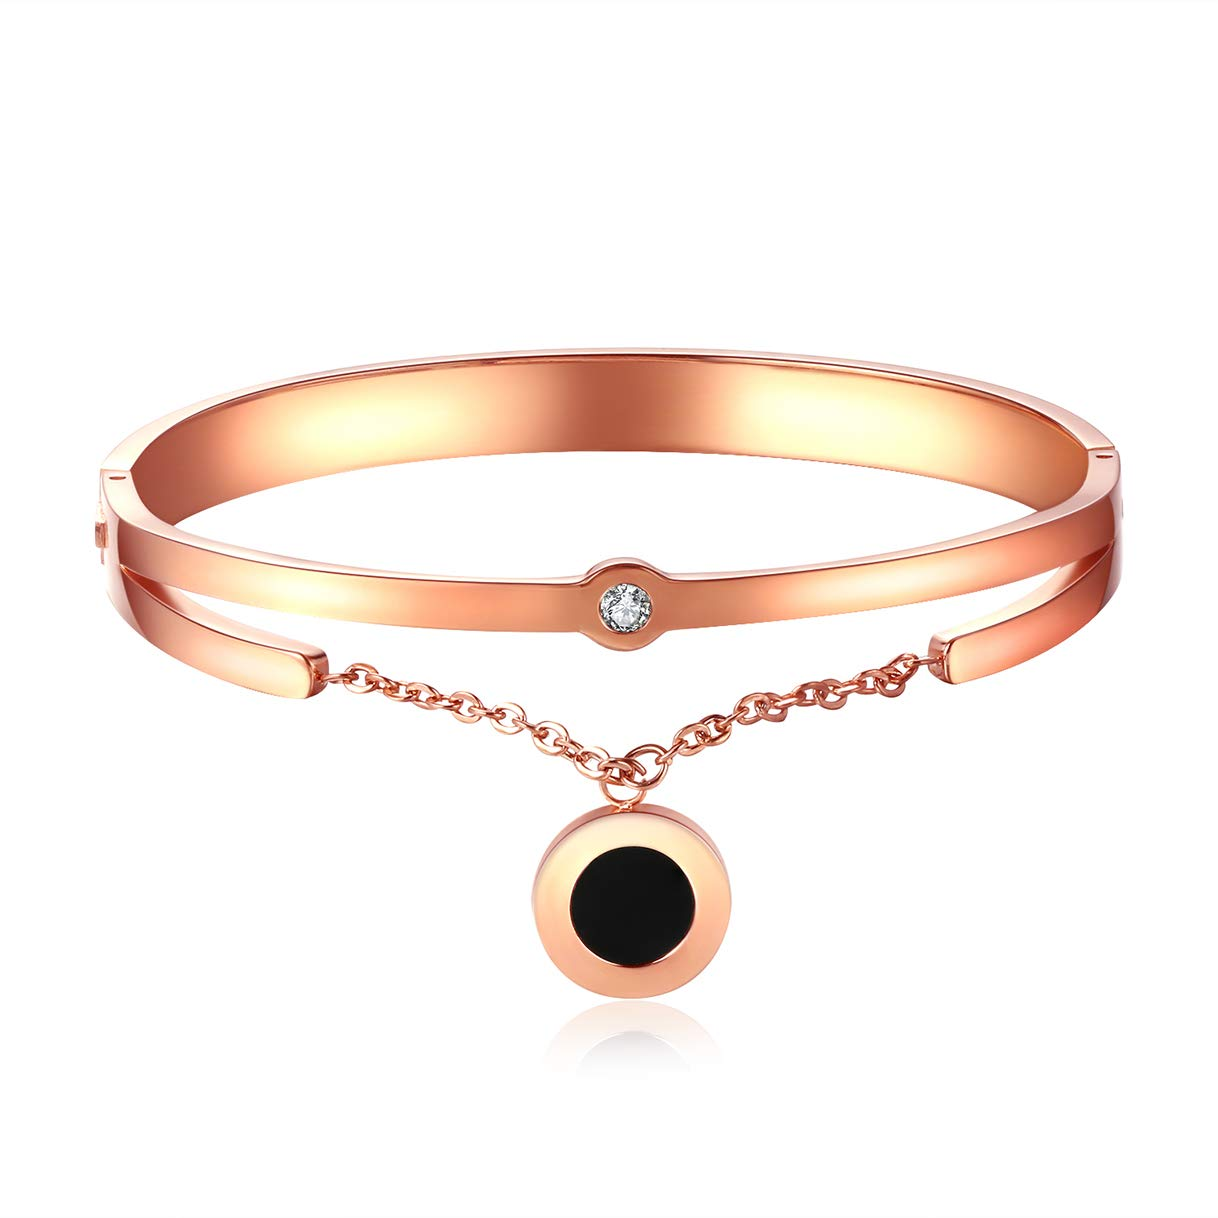 CHARMFAME Rose Gold Plated Stainless Steel Bangle with Black Circle Pendant Fashion Jewelry for Women /& Girls